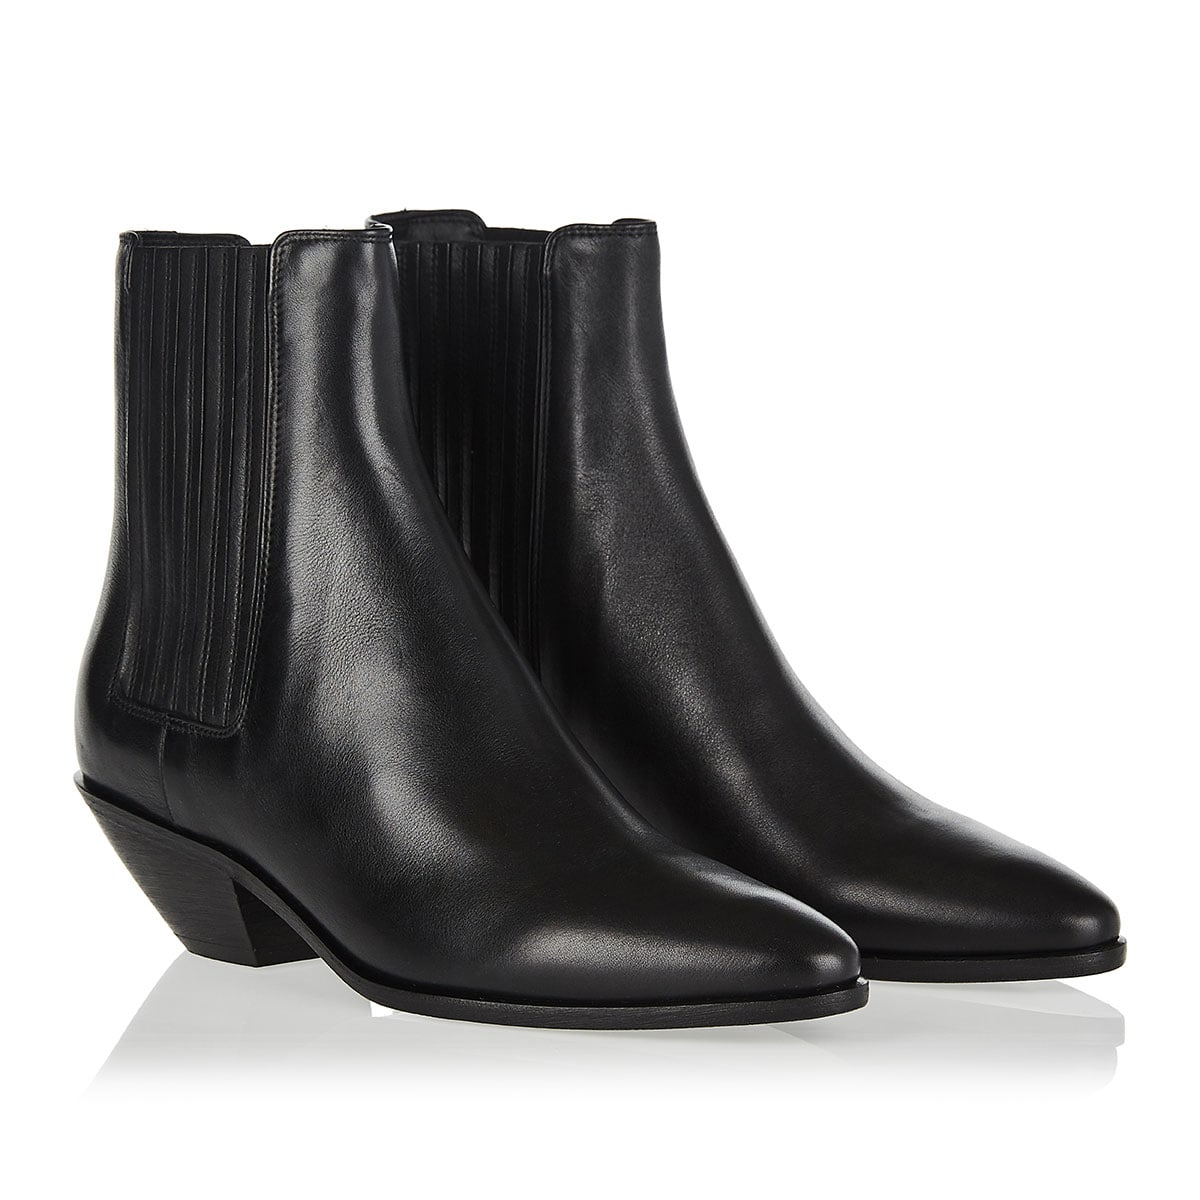 West Chelsea leather boots